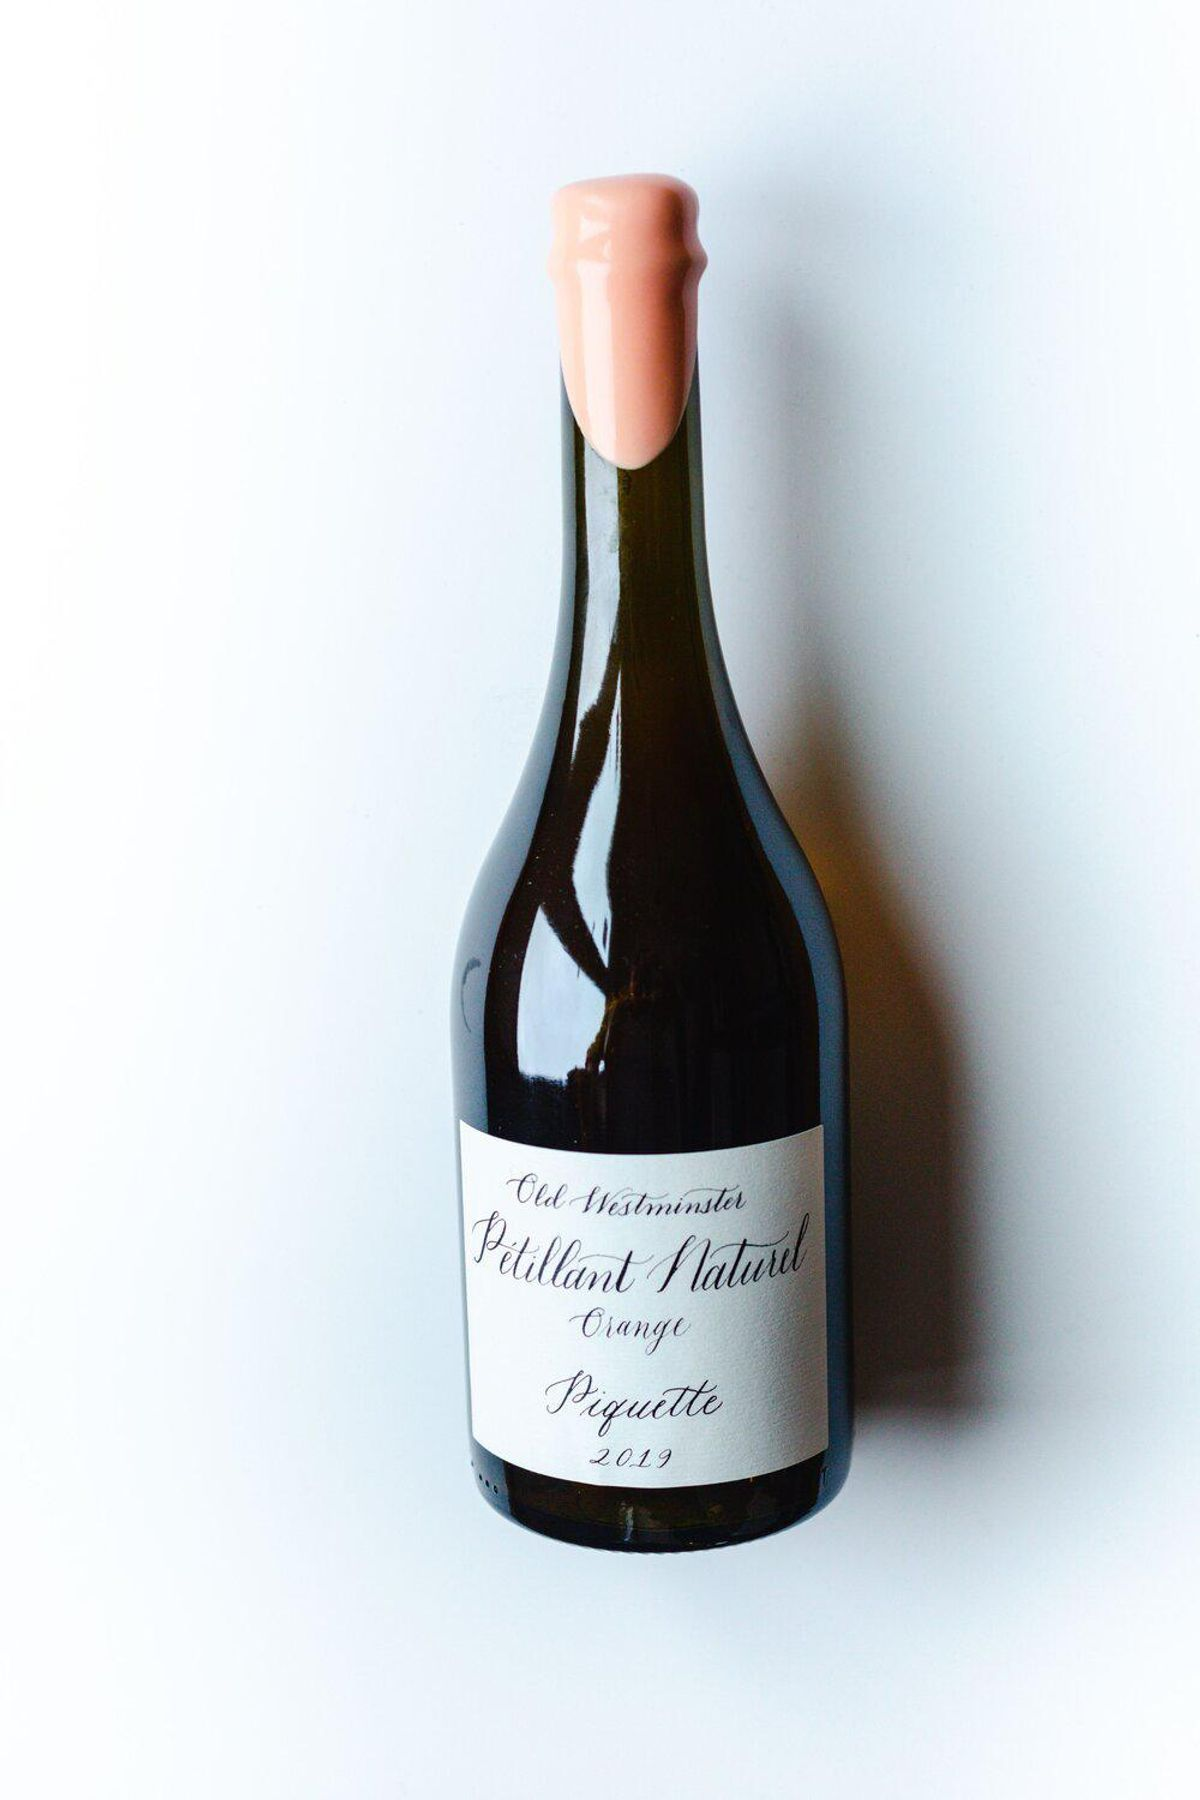 old westminister winery 2020 orange pet nat piquette